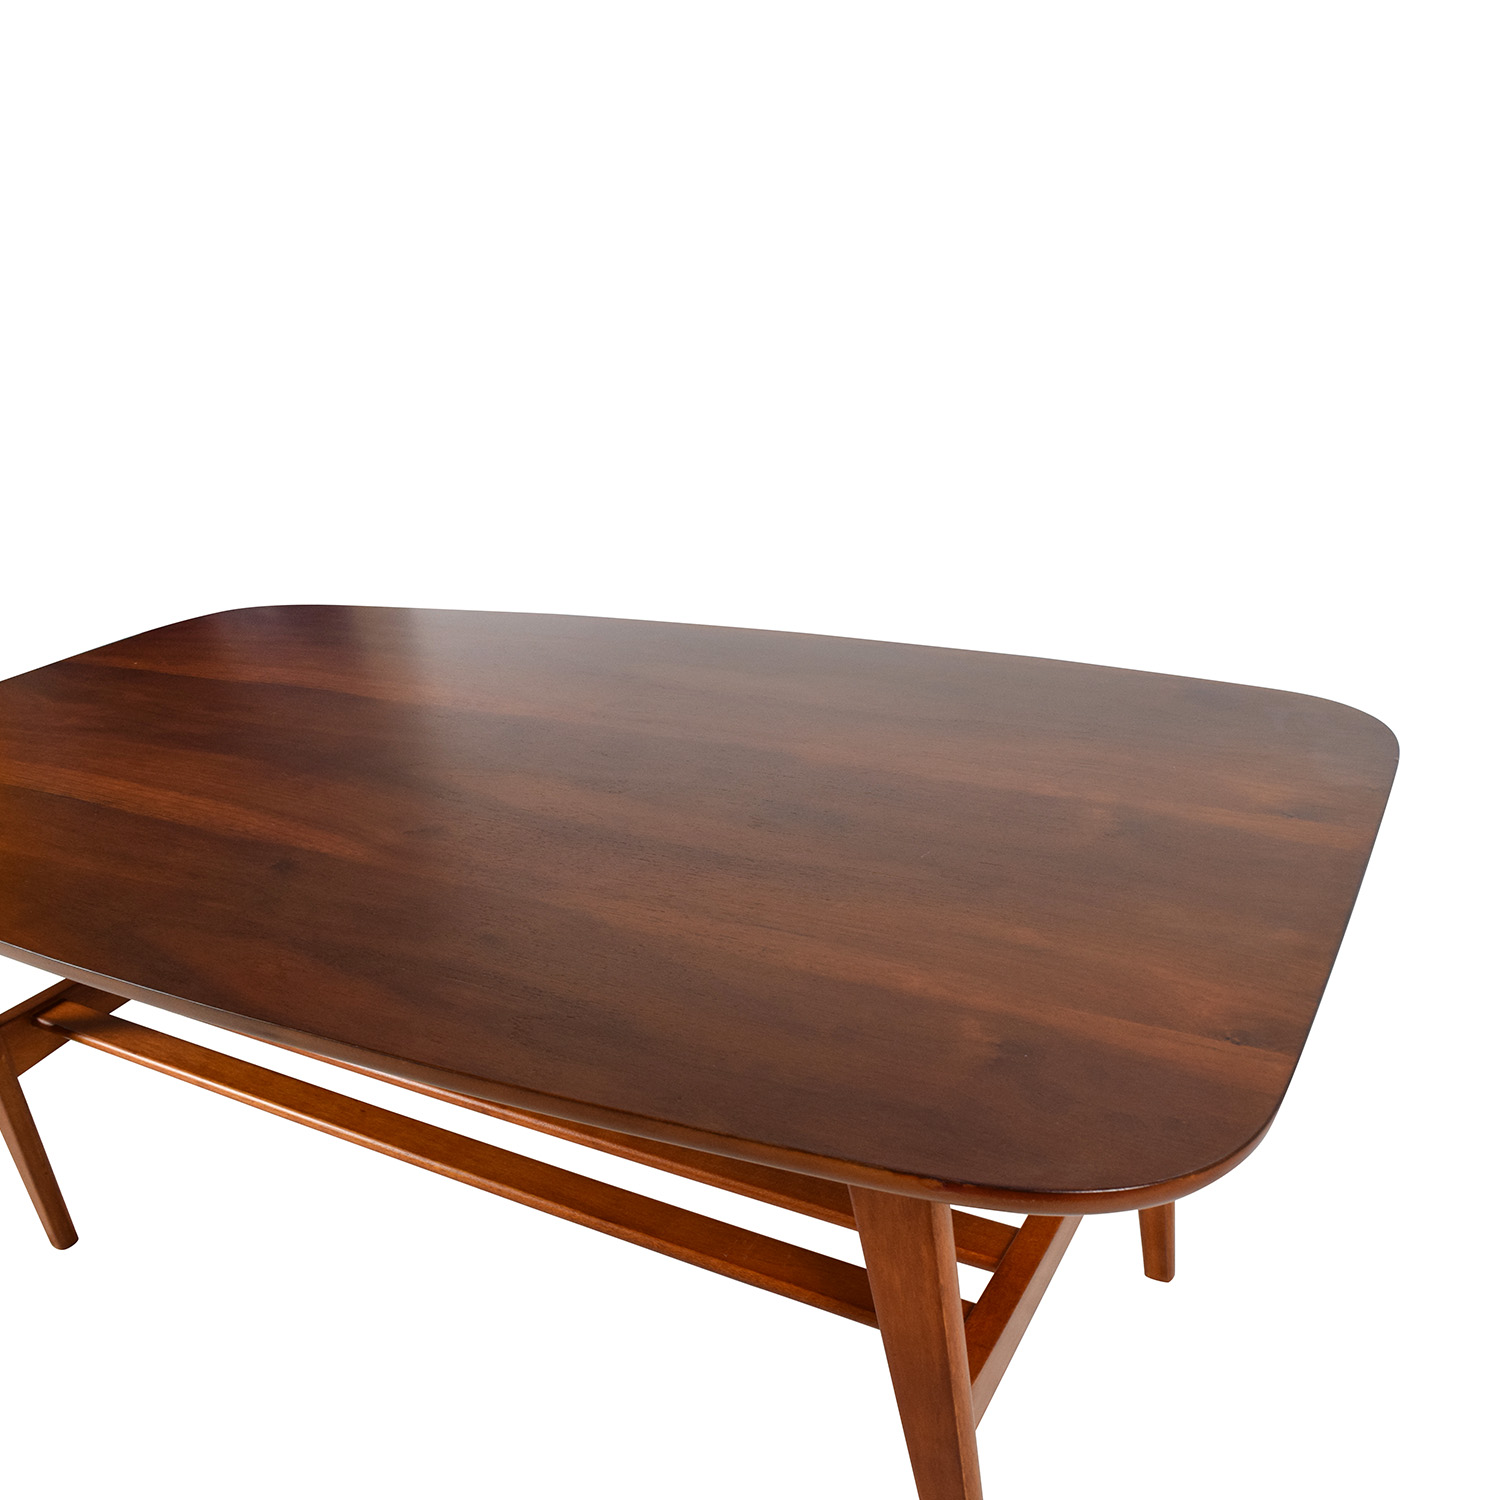 48 Off Brown Wood Coffee Table With Shelf Tables